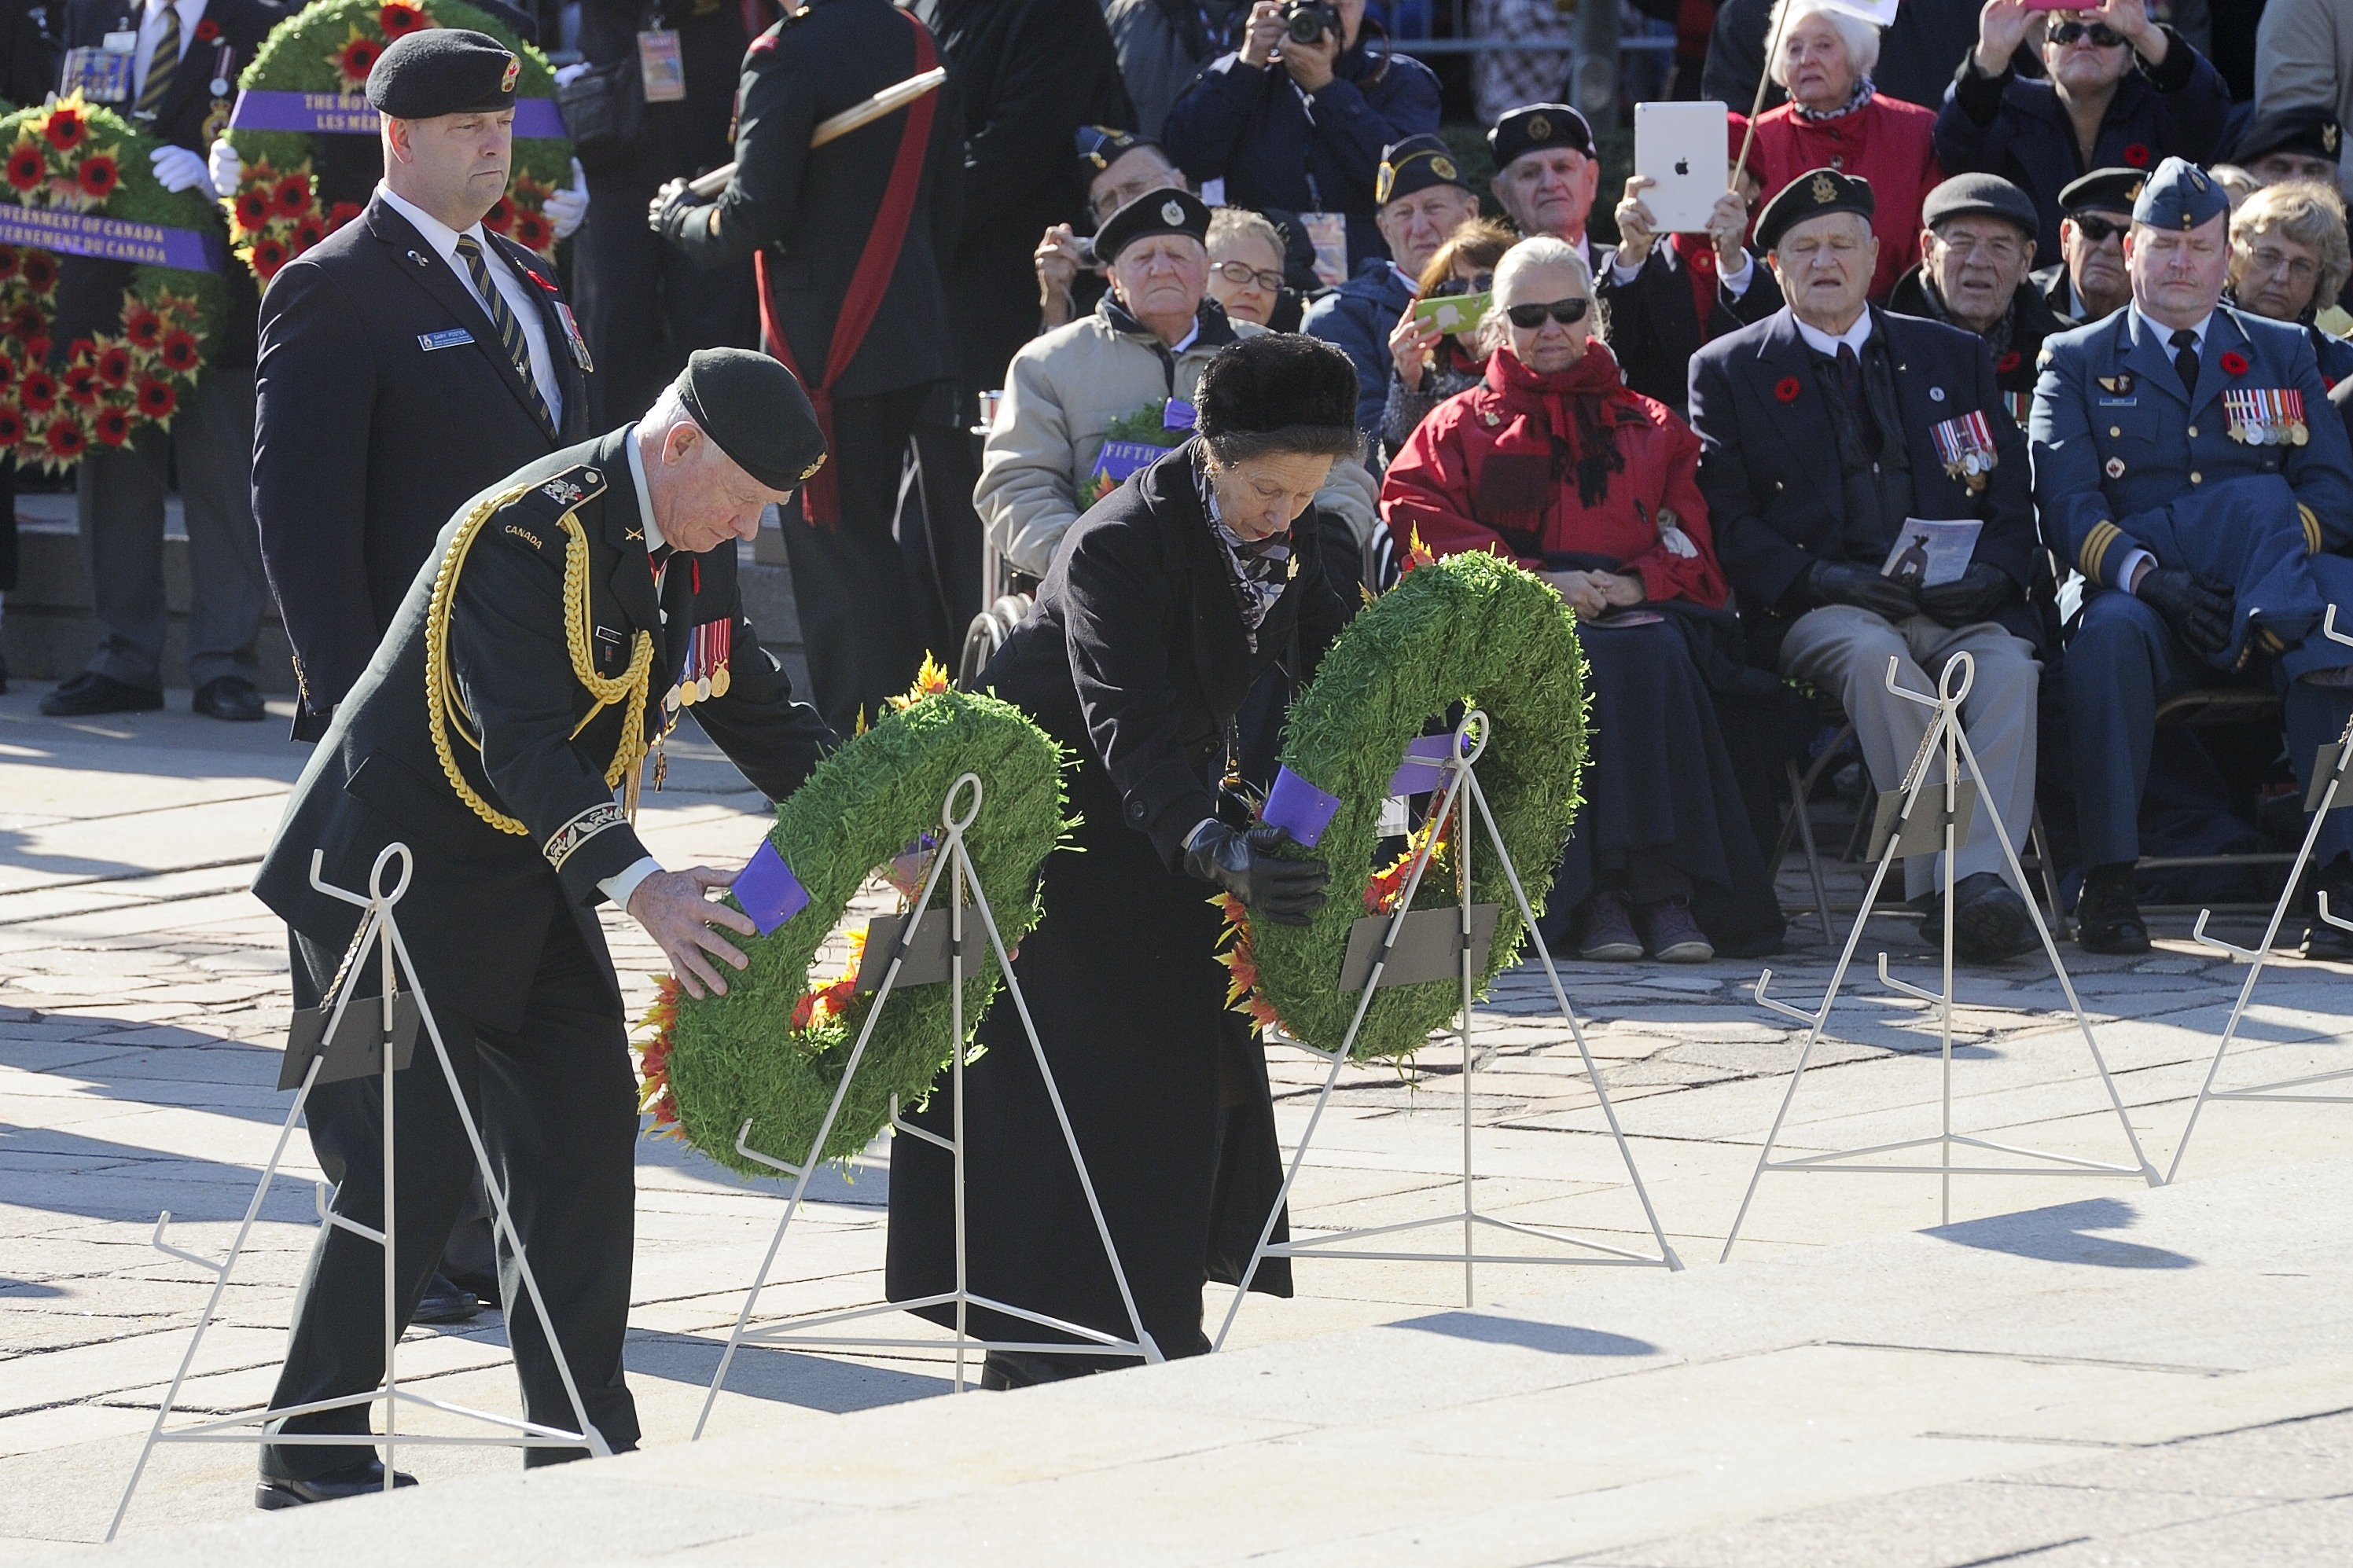 Princess Anne and Governor General David Johnston lay wreaths at the National War Memorial during the National Remembrance Day Ceremony in Ottawa, Ontario, on November 11, 2014. PHOTO: Corporal Michael J. MacIsaac